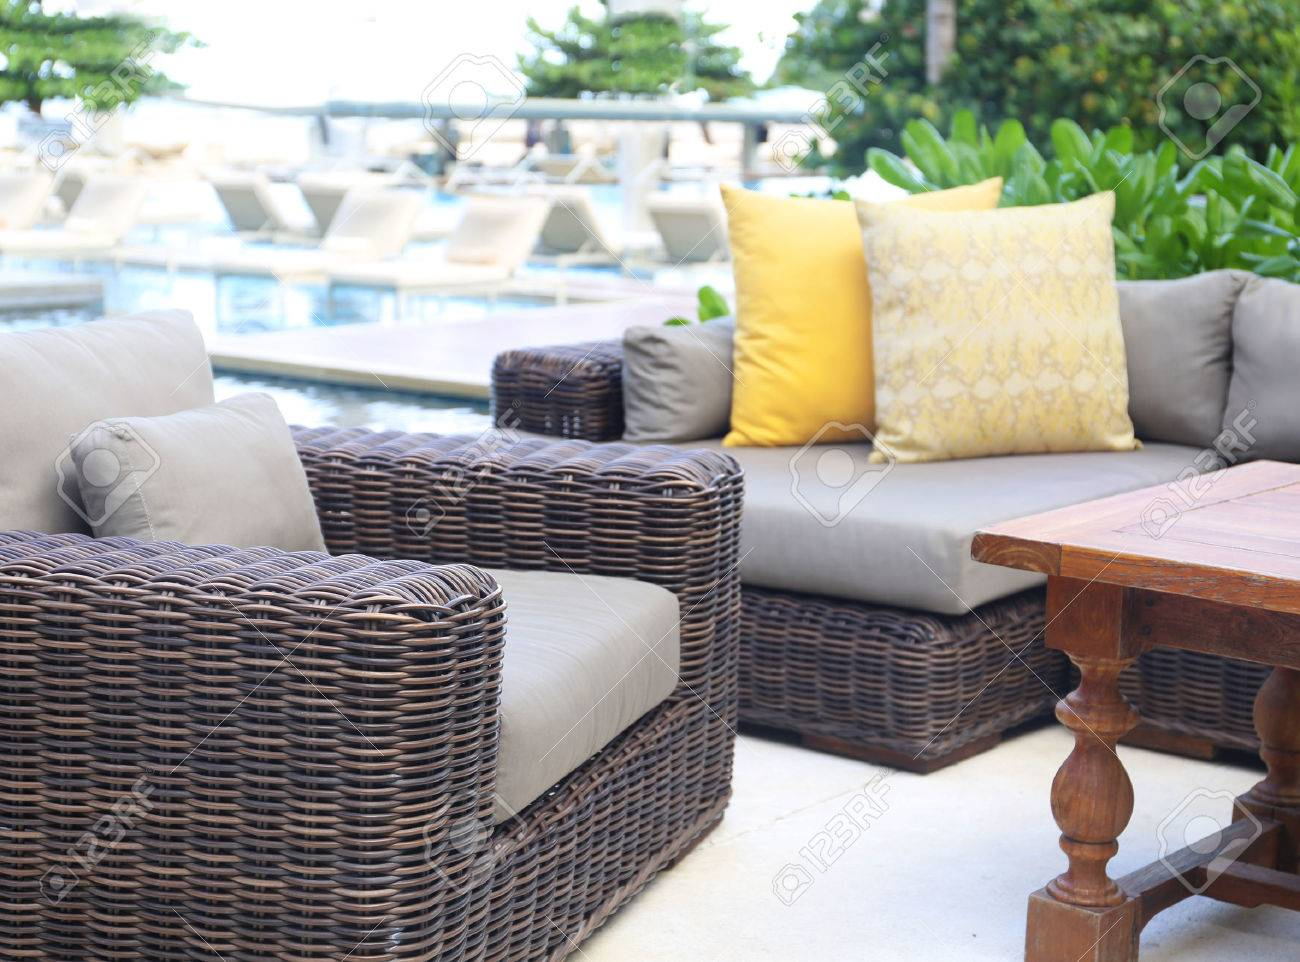 Full Size of Rattan Sofa Set Grey Indoor Vintage Outdoor Corner For Sale Cover Wilko Davao Used Table And Chairs Big Grau Graues Leder Federkern Bunt Chesterfield Rundes Sofa Rattan Sofa